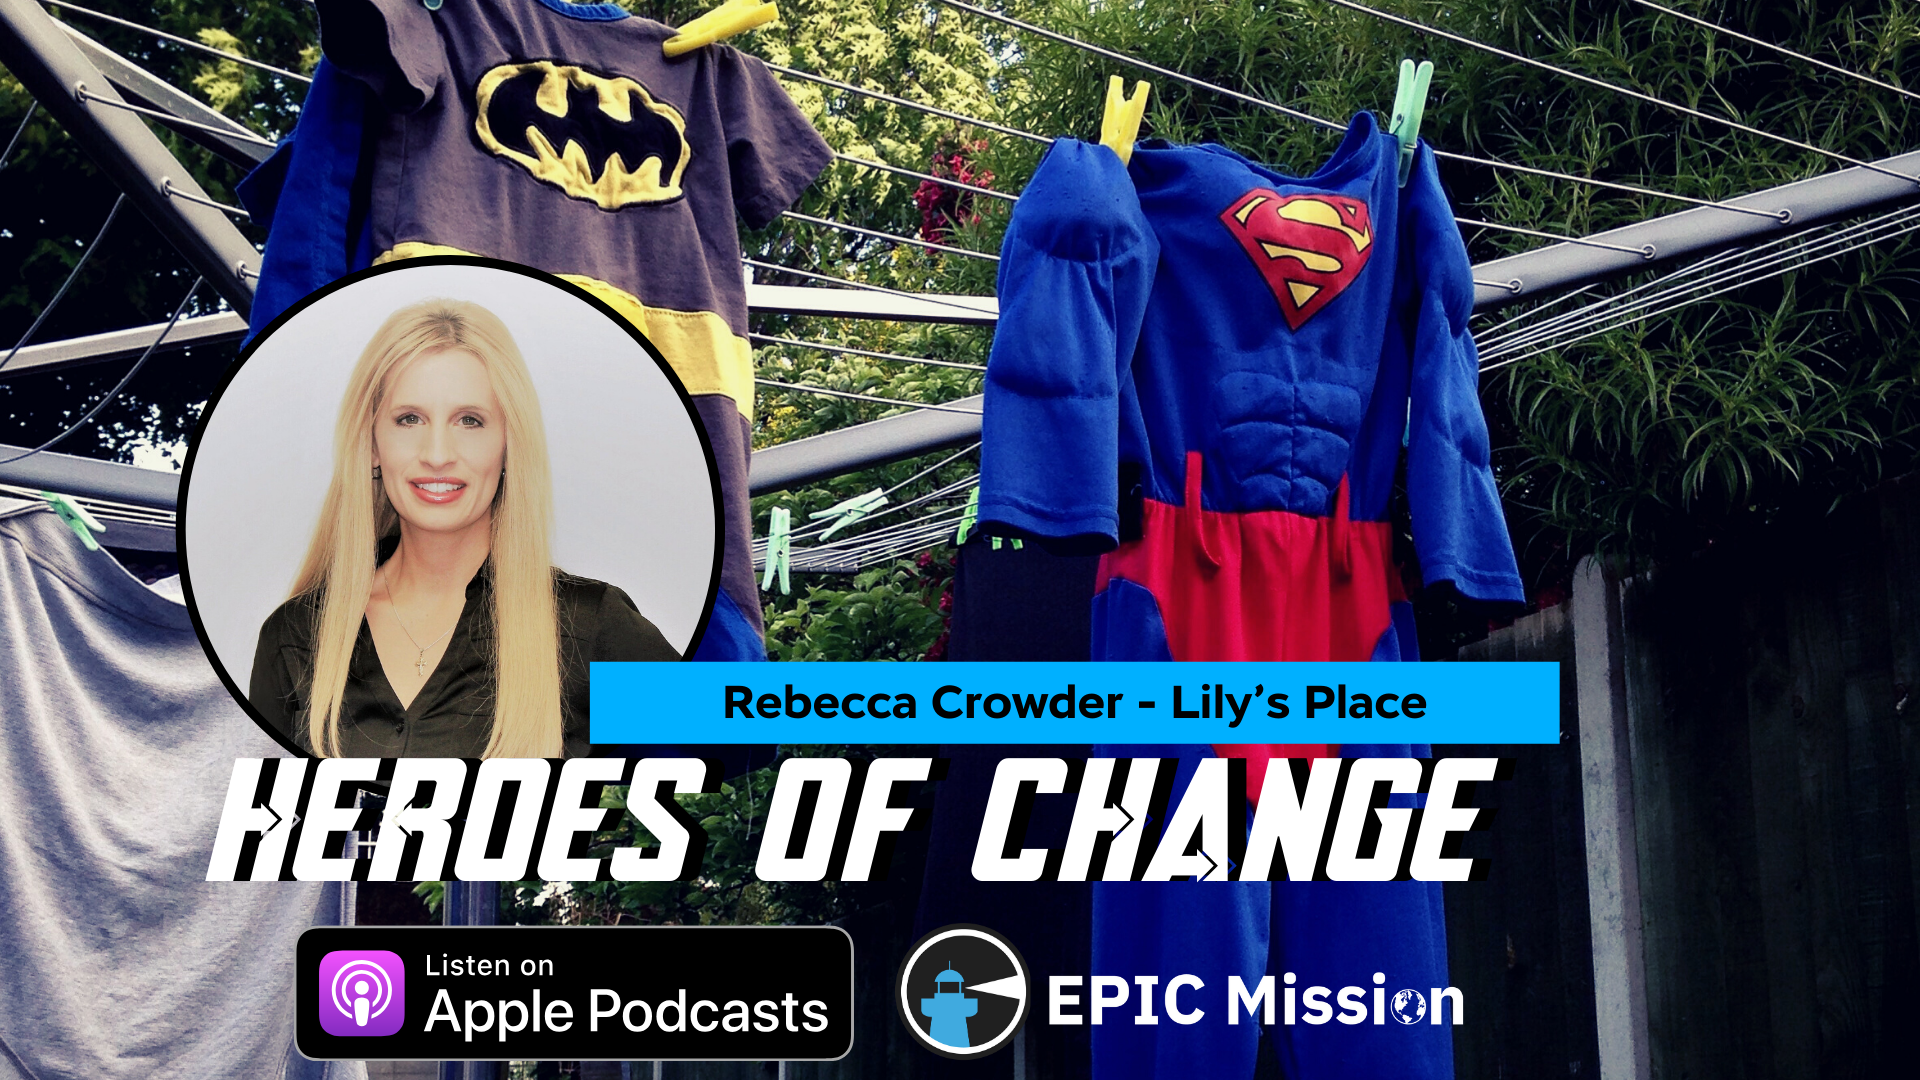 Heroes of Change: with Rebecca Crowder of Lily's Place - Epic Mission